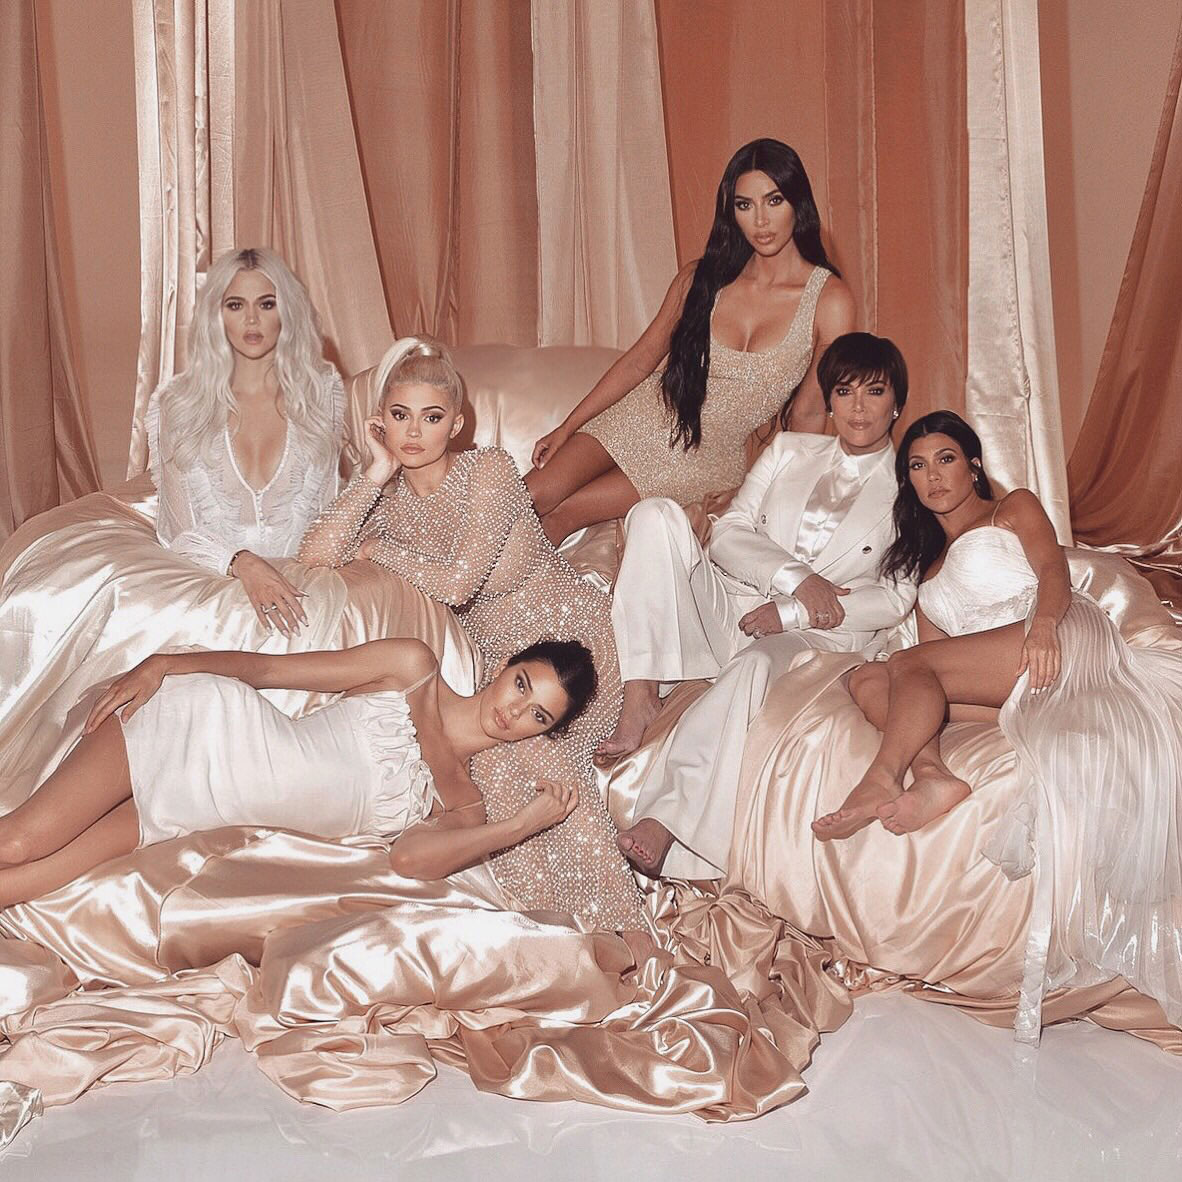 This <em>Keeping Up with the Kardashians</em> Promo Image Is Basically an Optical Illusion